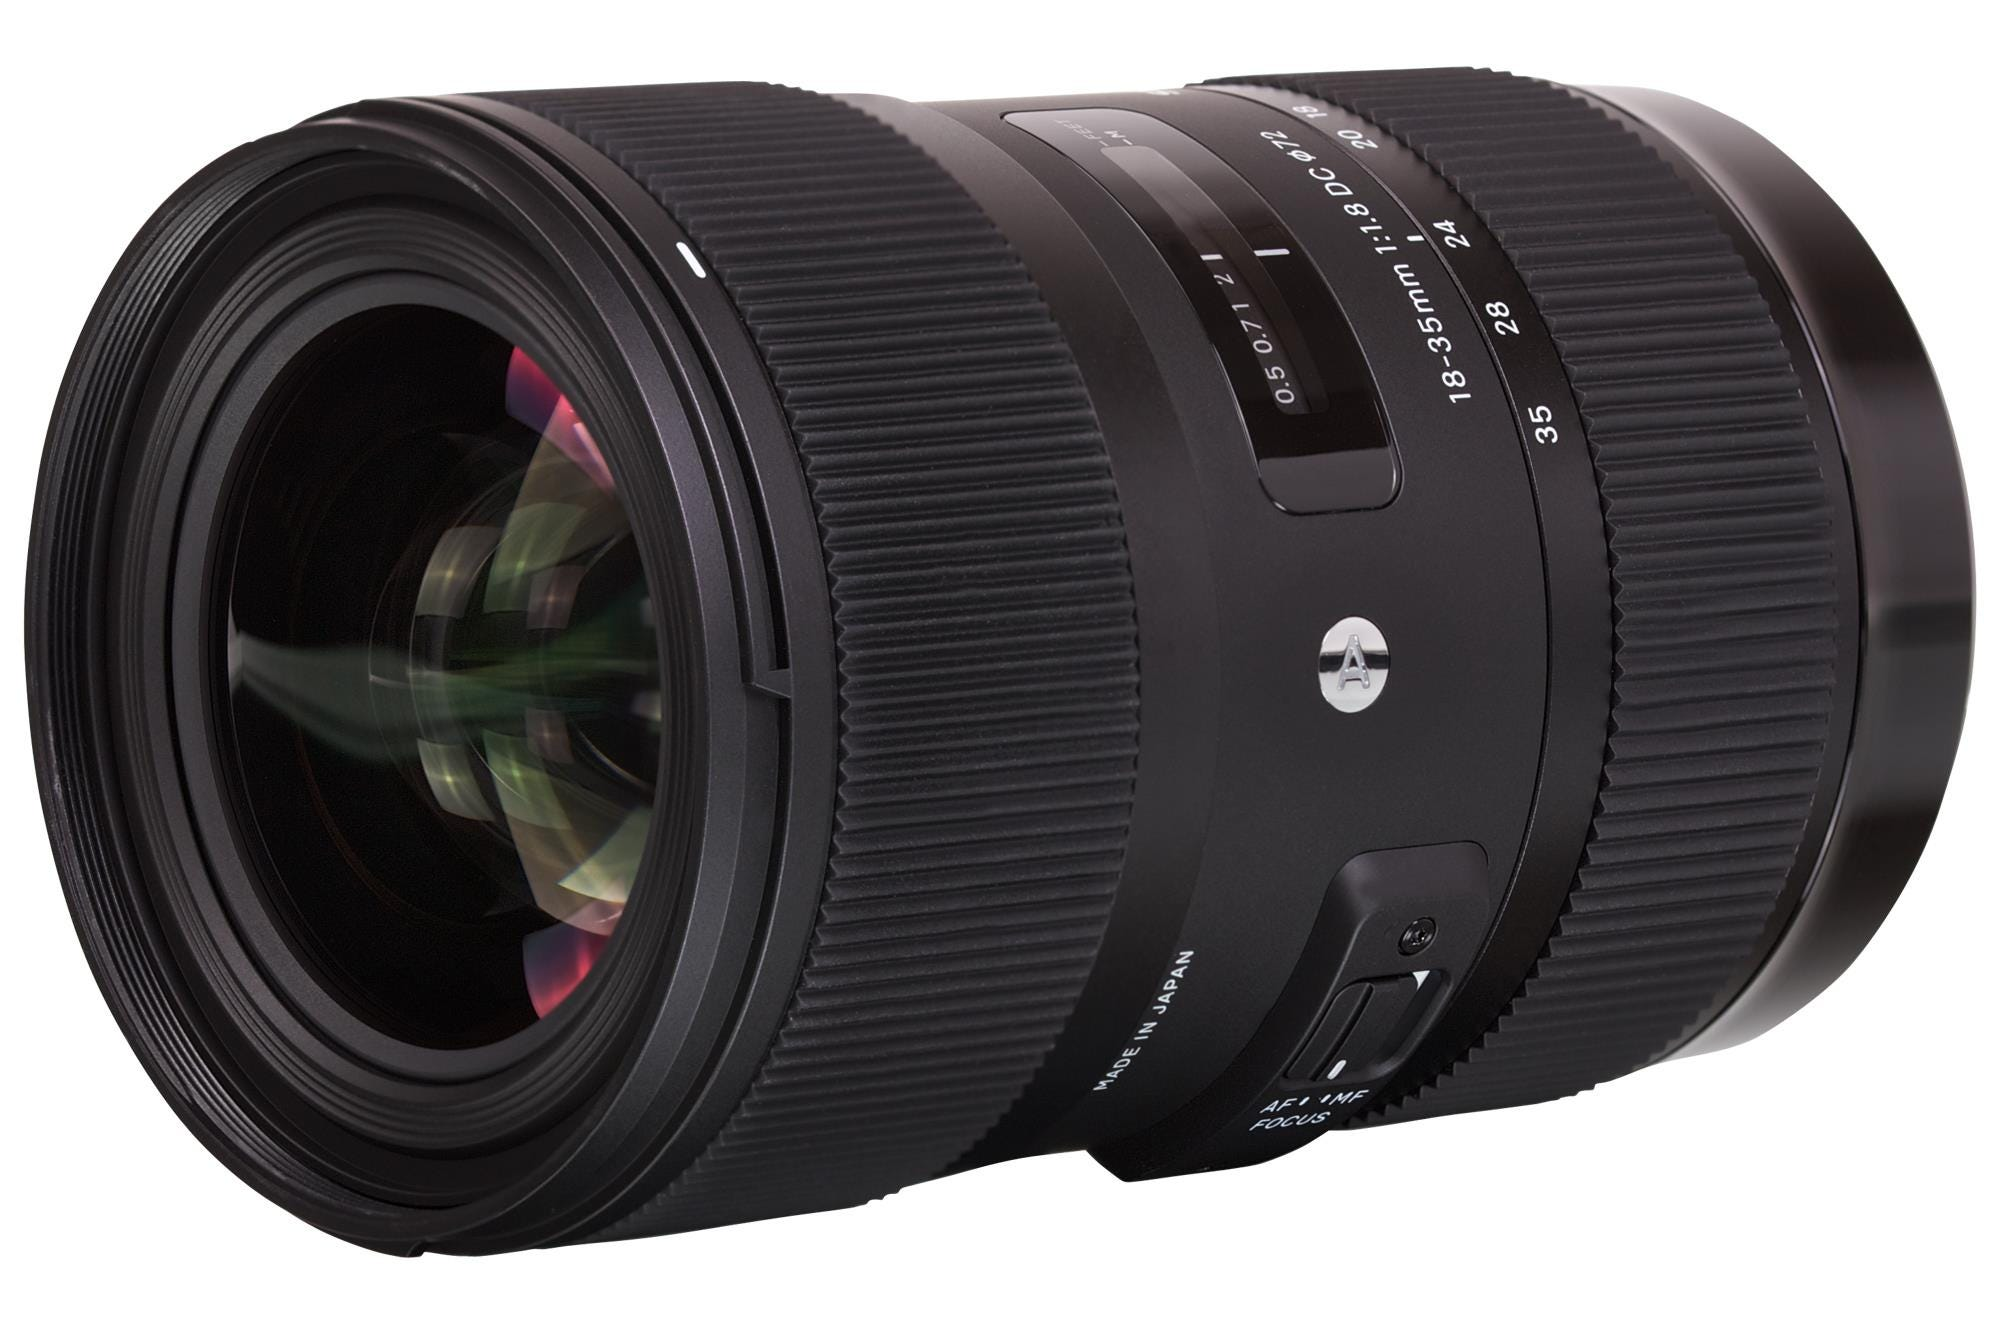 Sigma 18-35mm f/1.8 DC HSM Standard Zoom Lens Canon Fit